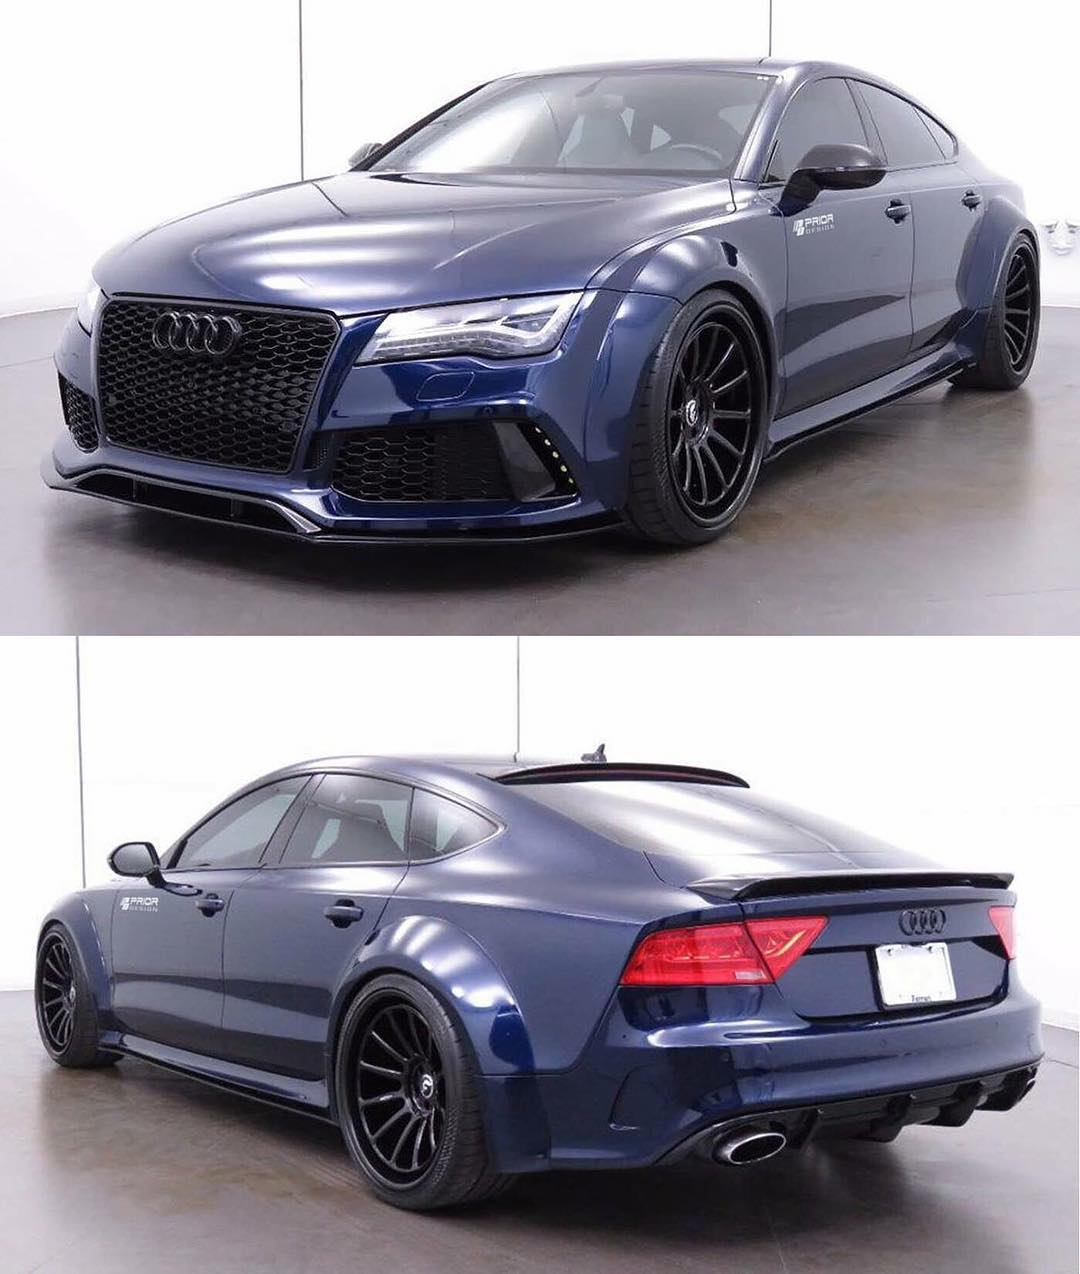 audi-rs7photo-priordesign_____________________________________________aud.jpg